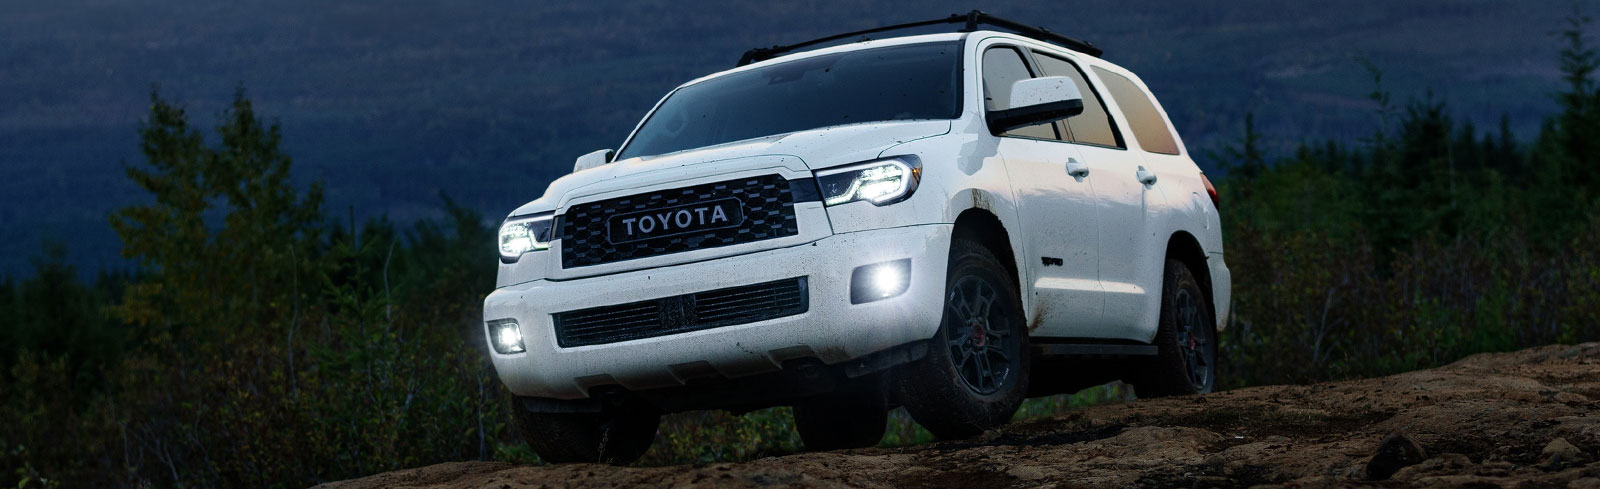 All New 2020 Toyota Sequoia for Sale at Future Toyota of Yuba City